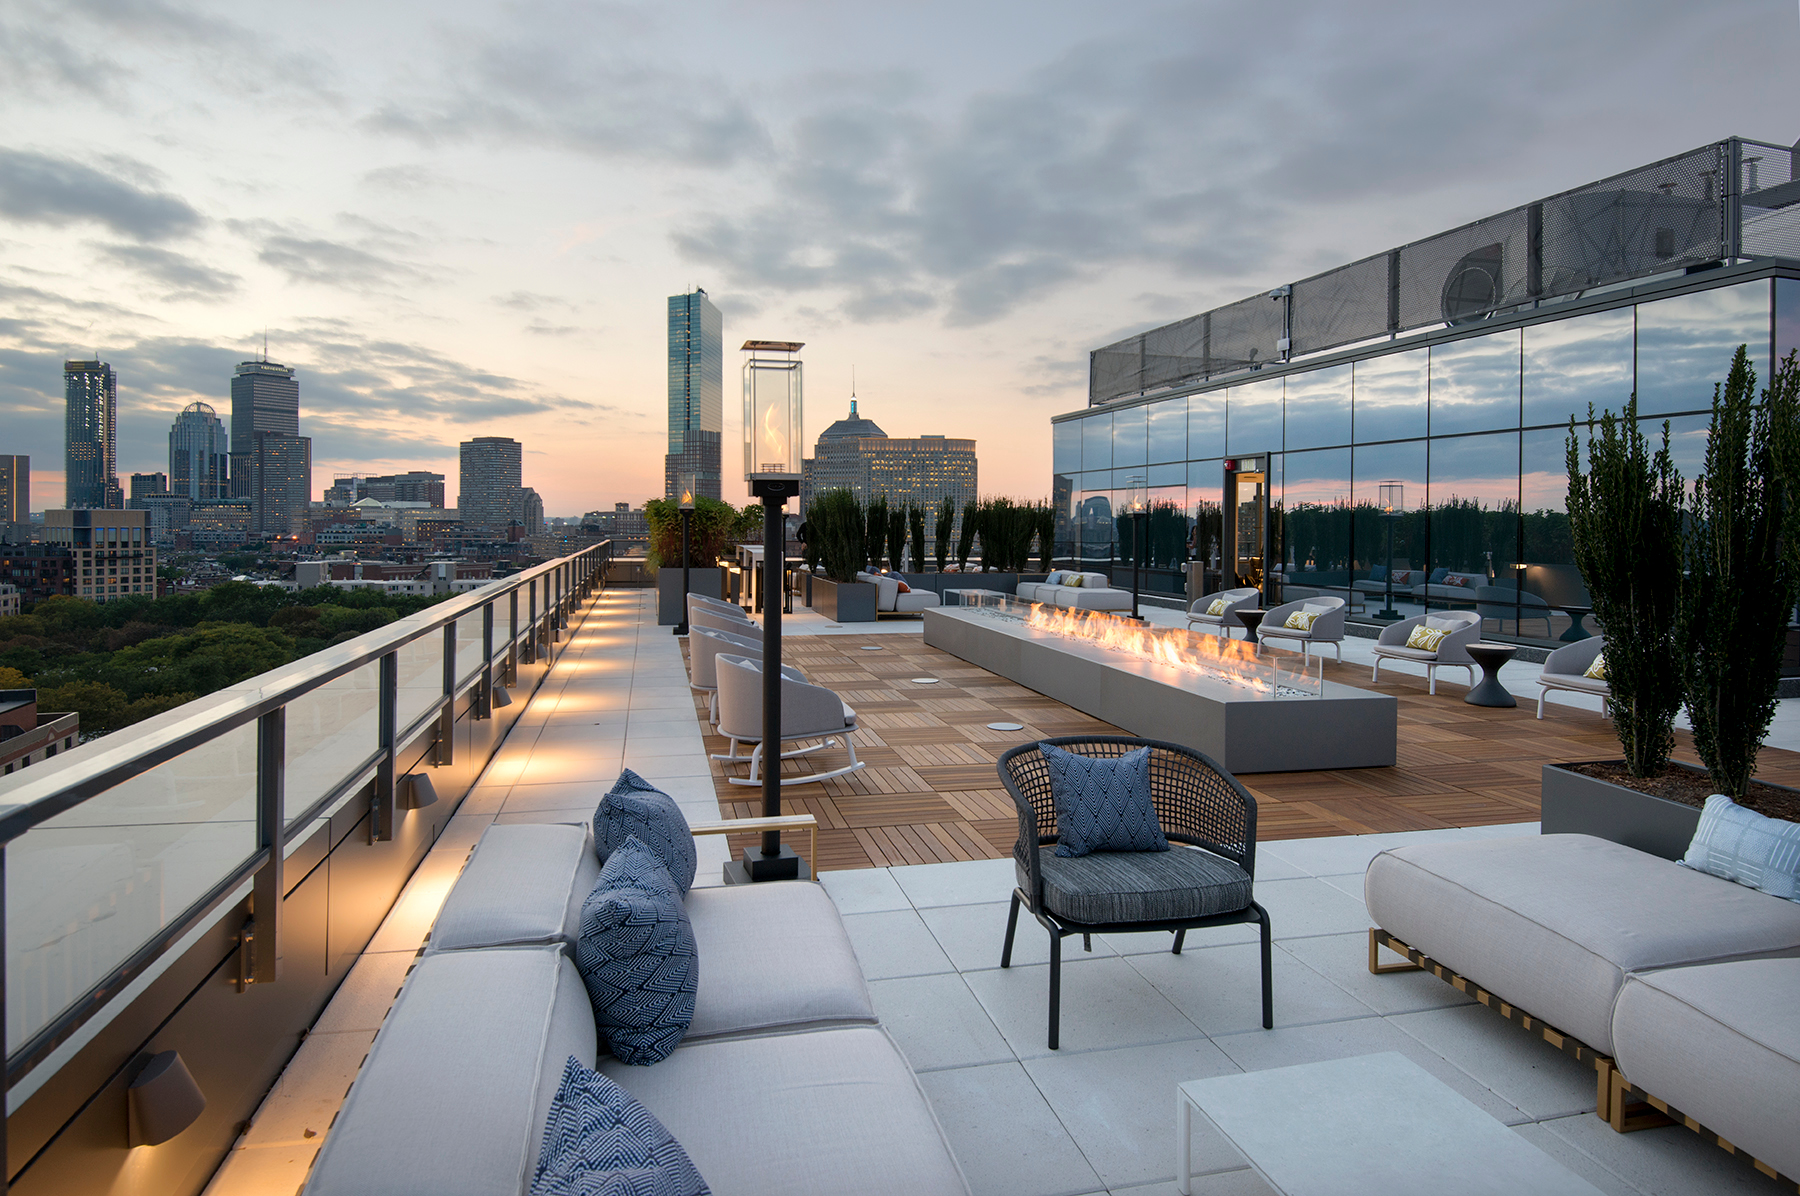 Some of 345 Harrison apartment's amenities include comfortable, modern seating and a twelve-person firepit with glass details that express the building's upscale vibe. Bison 2x2 Smooth Ipê Wood Tilesover Bison Versadjust Pedestals were specified for many of the modern rooftop spaces to provide modularity.